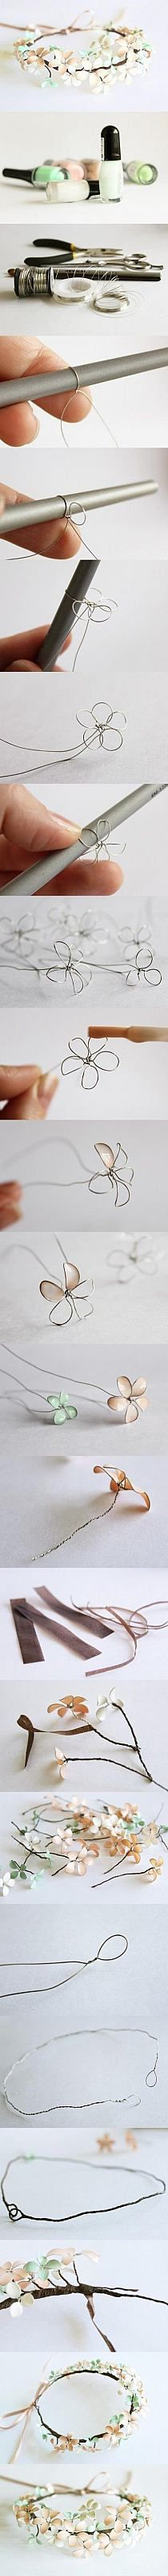 flowers made from thin wire and nail polish | She's cra…